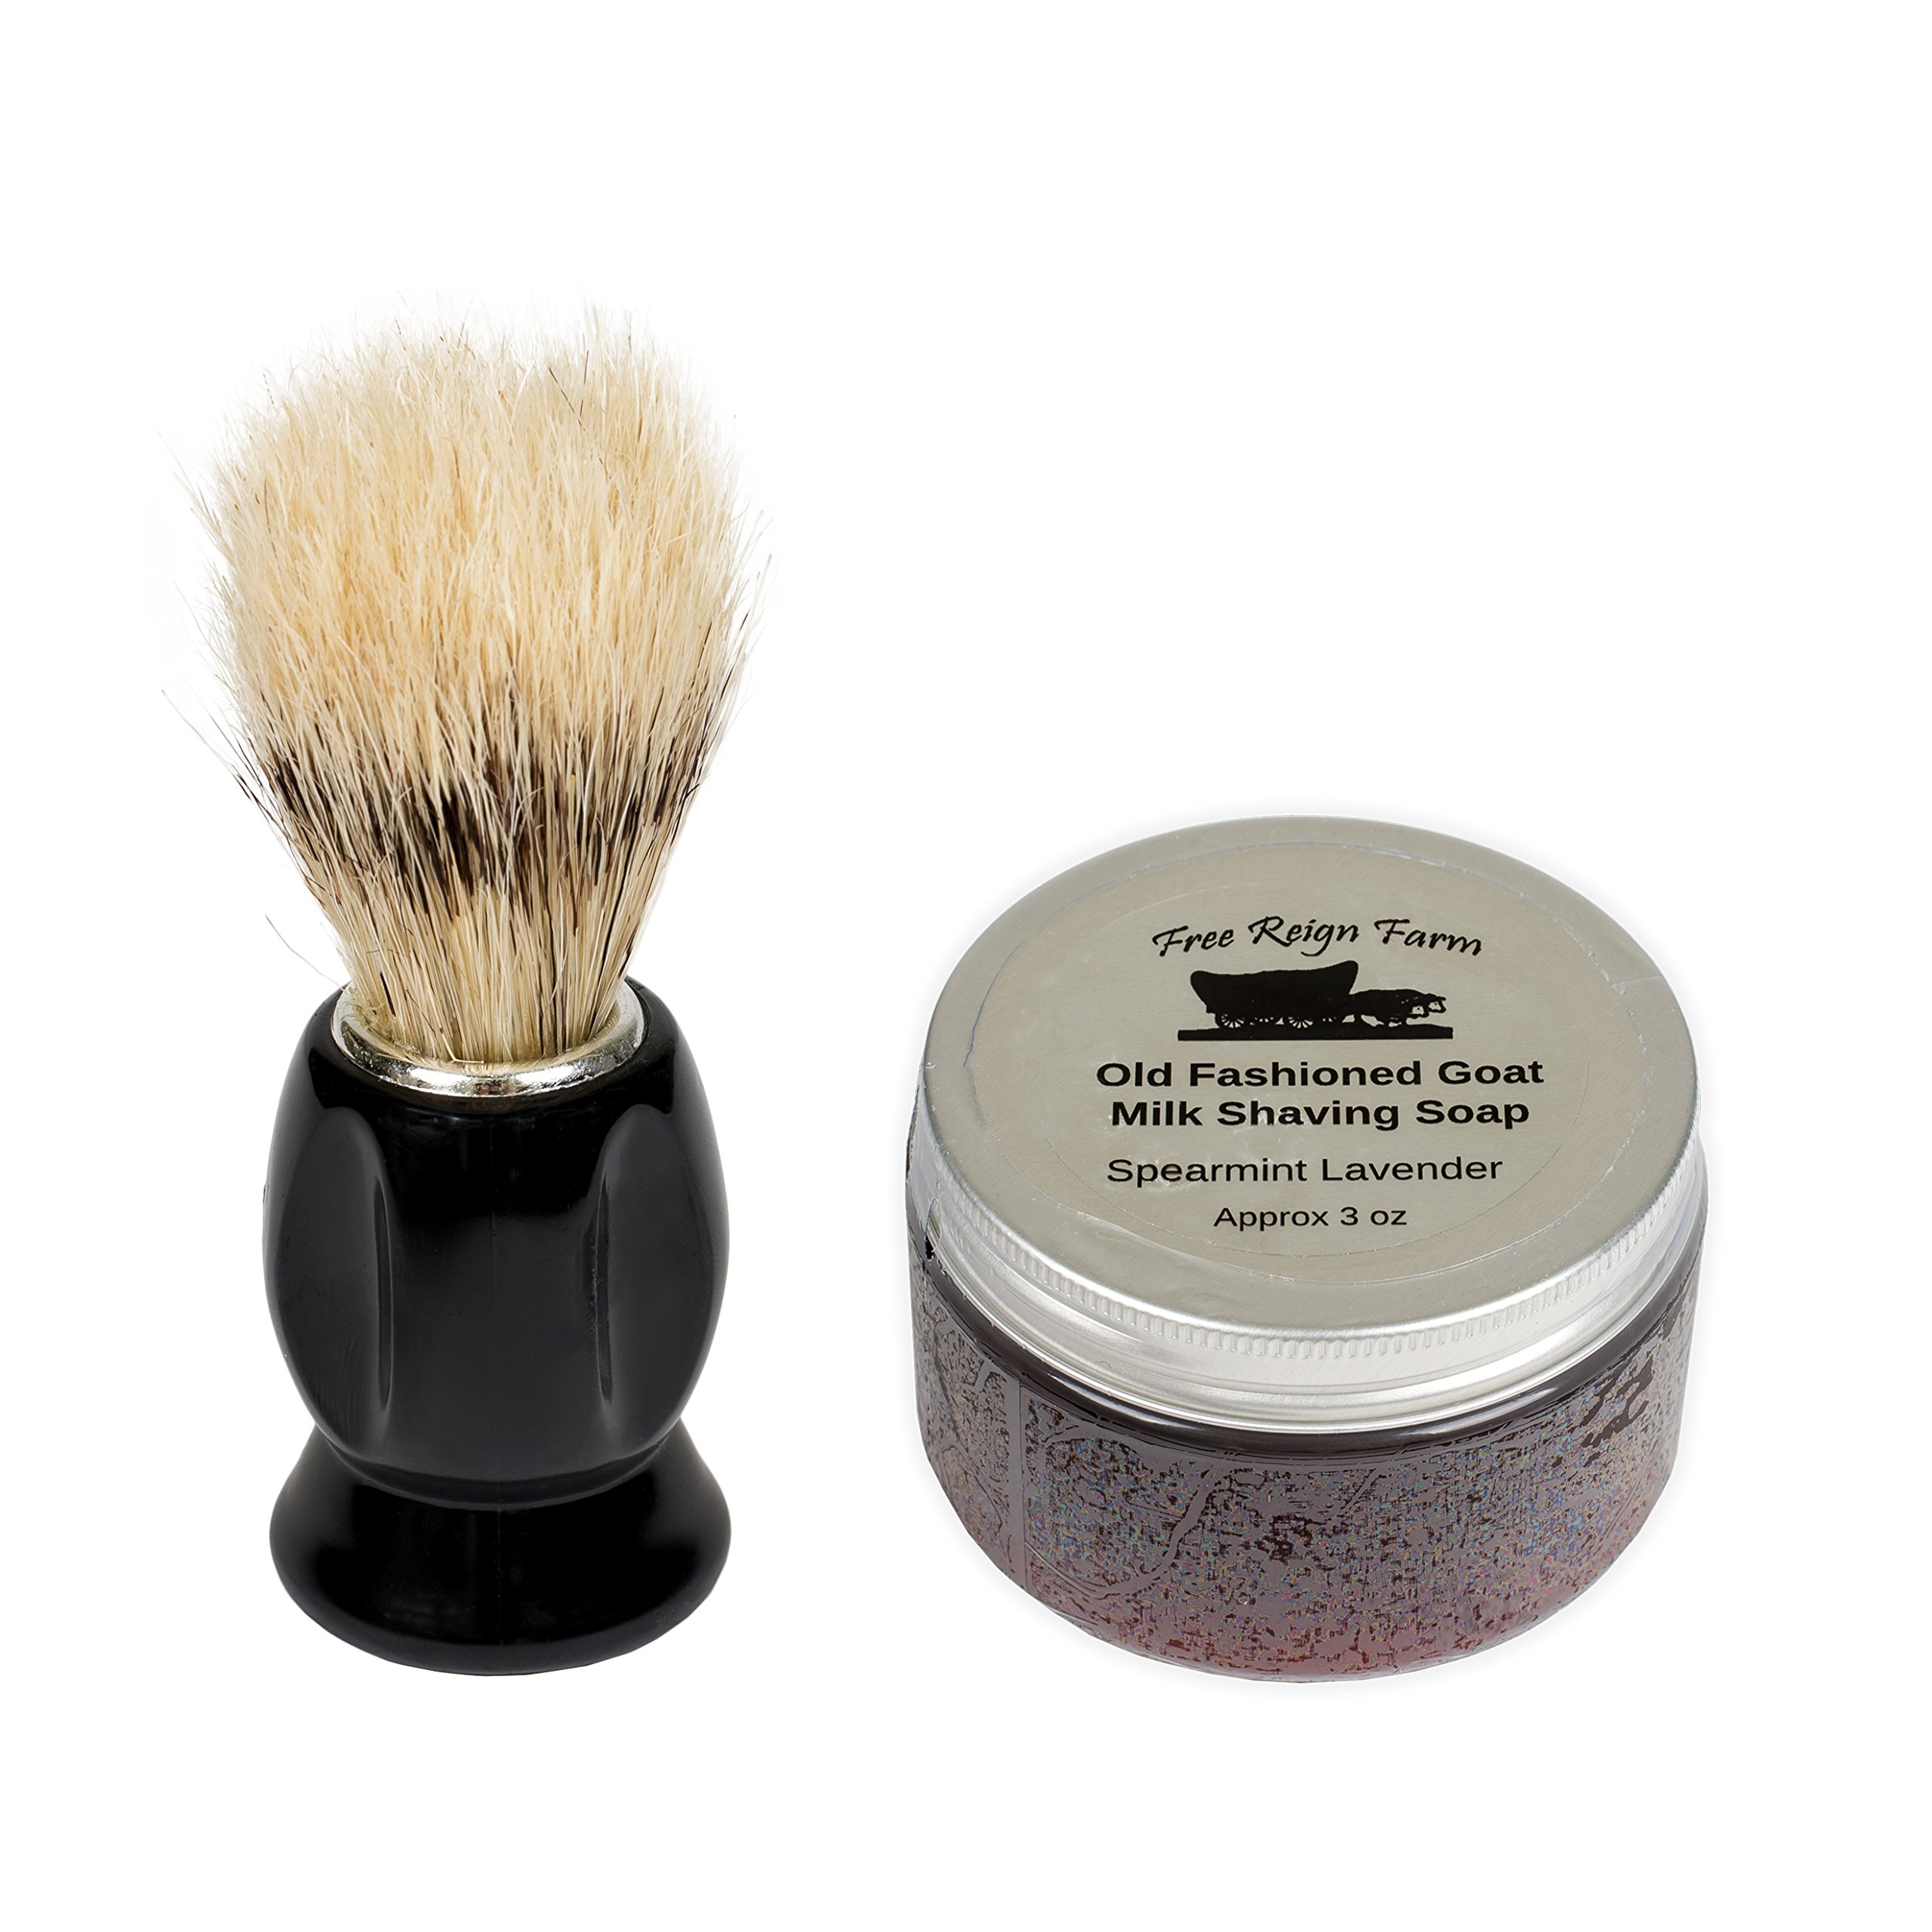 Free Reign Farm Spearmint & Lavender 3 Ounce Old Fashioned Goat Milk Shaving Soap with Brush by Free Reign Farm